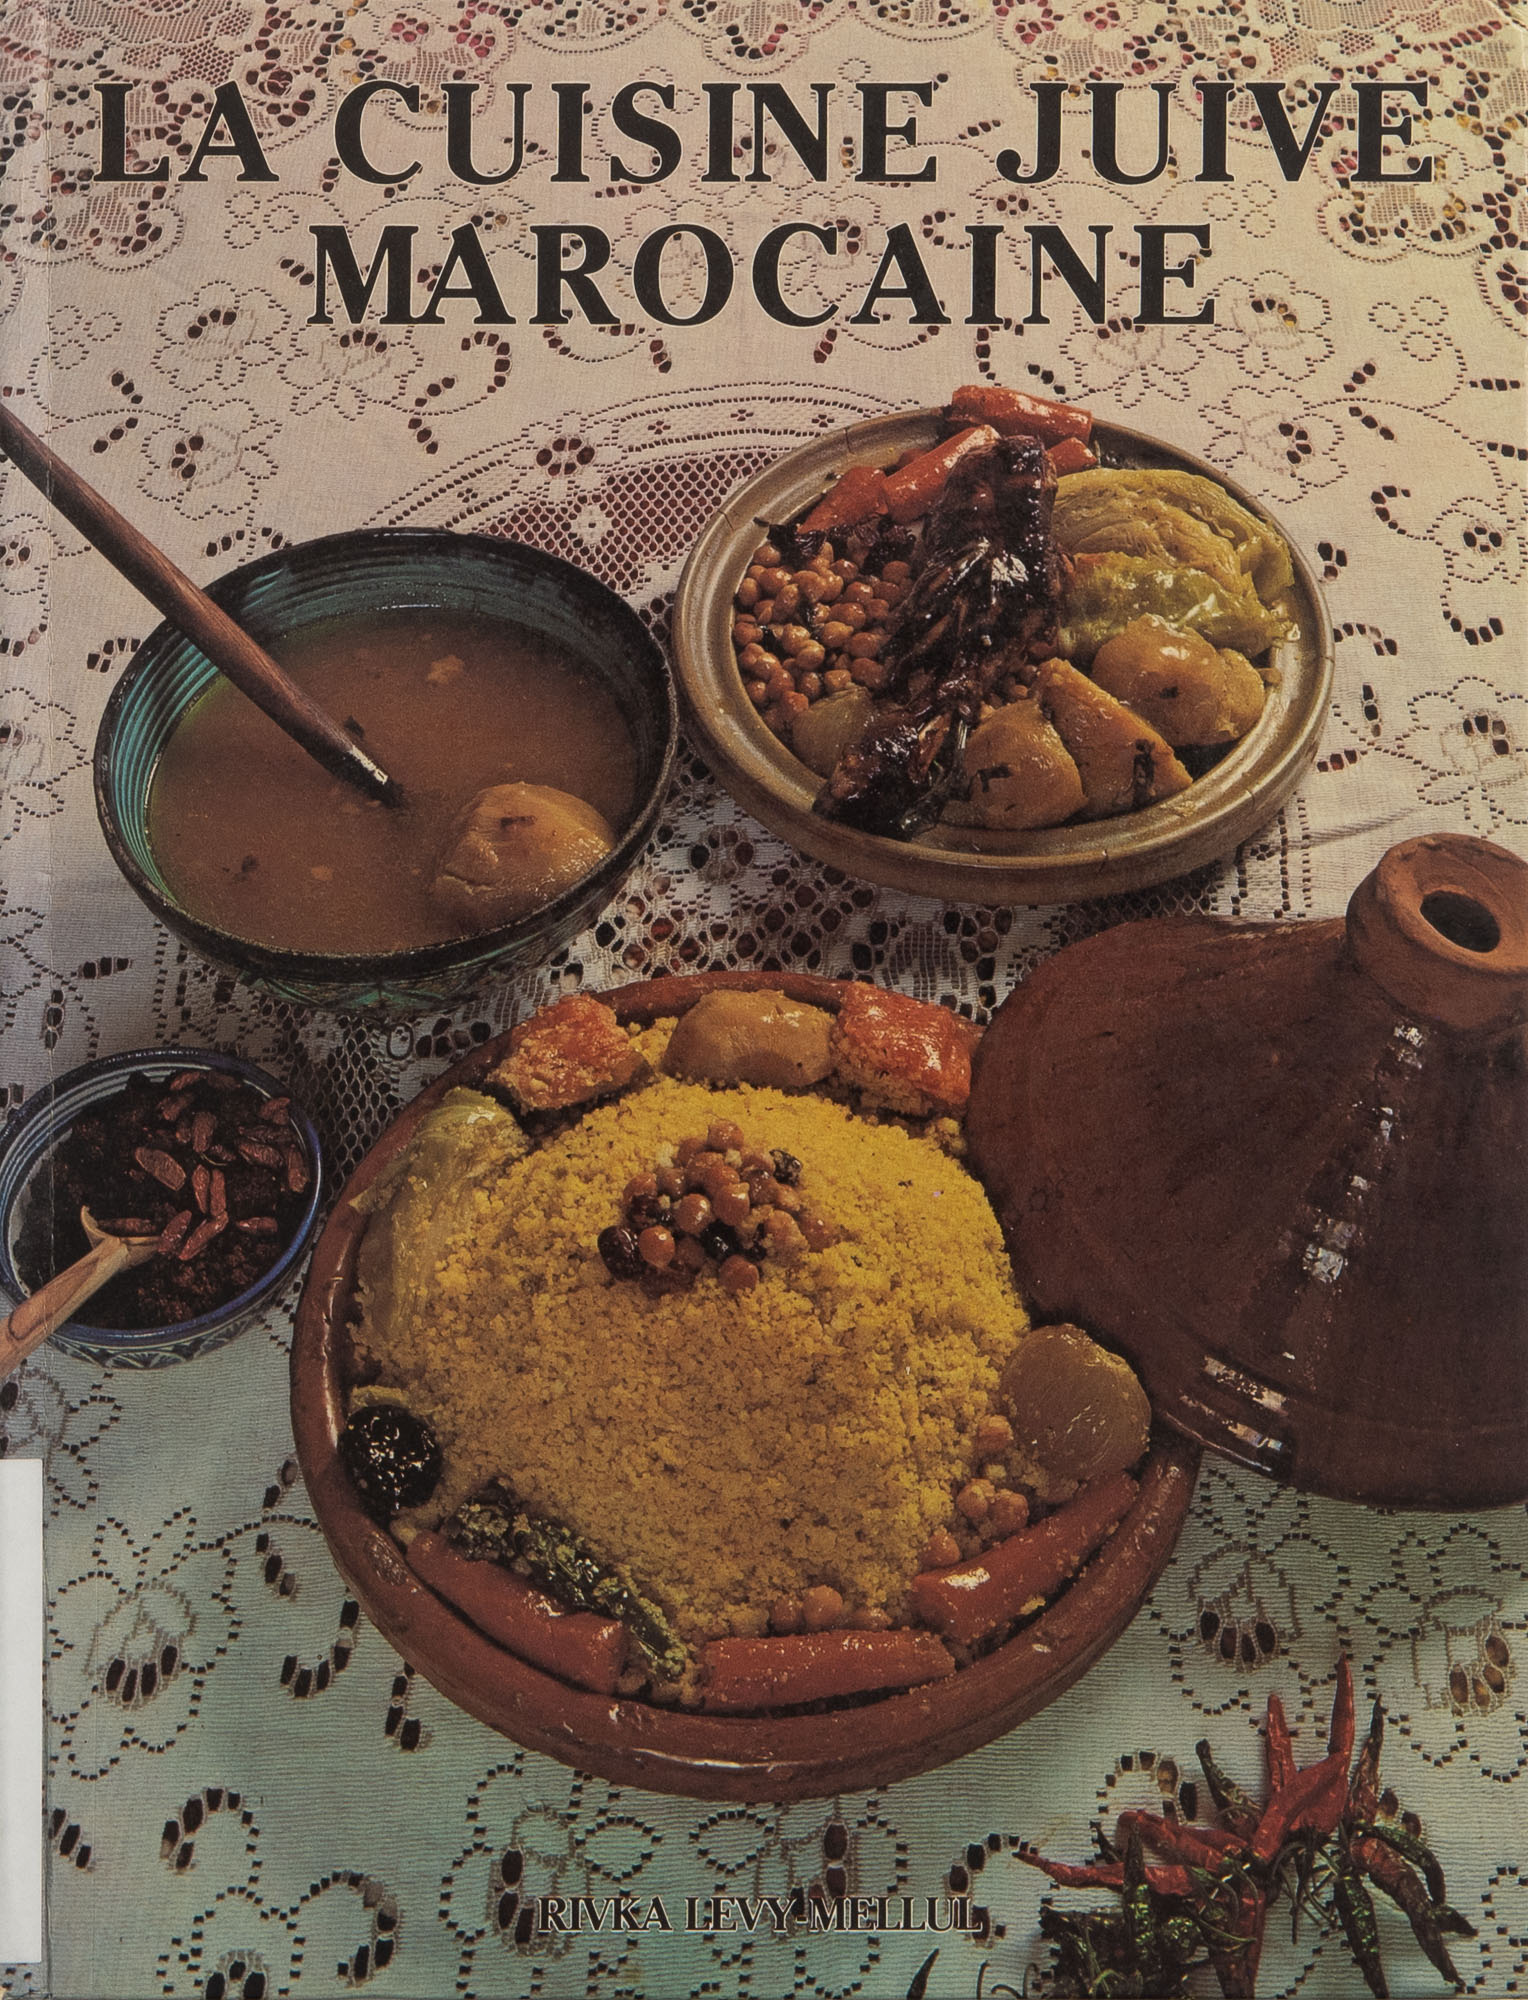 The cover of La Cuisine Juive Marocaine, a French-language cookbook about Jewish Moroccan food